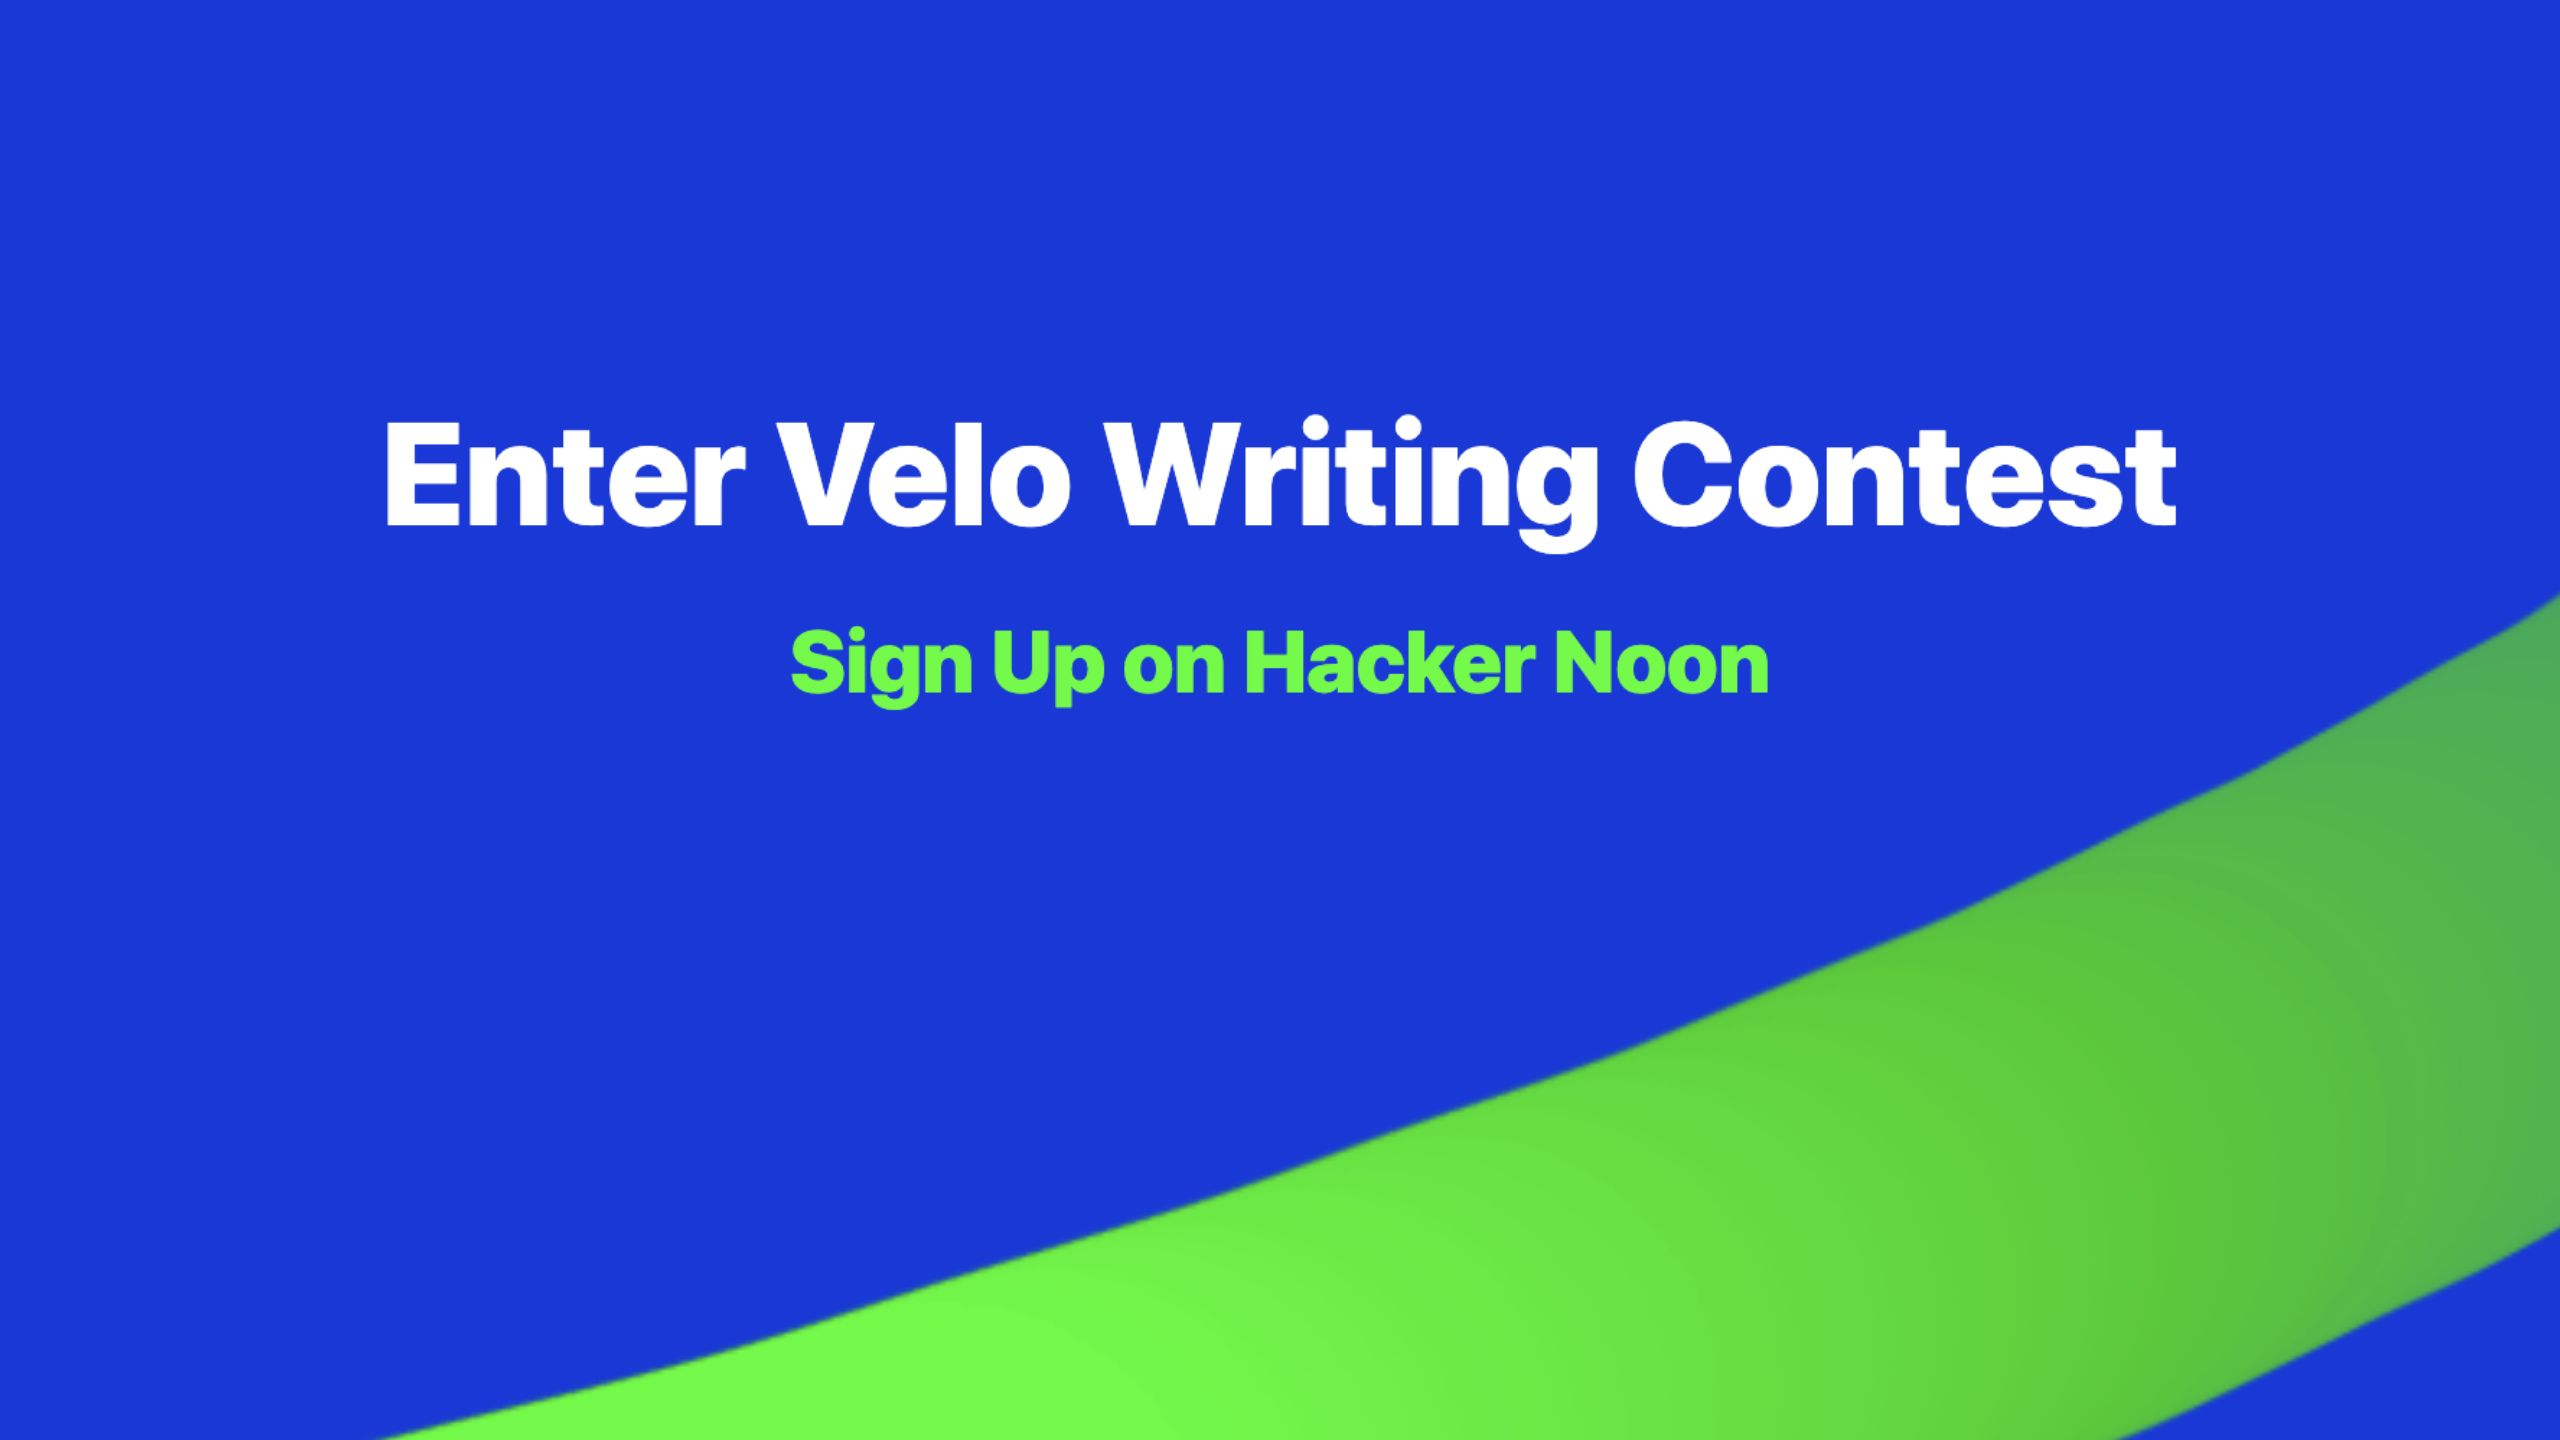 /introducing-the-velo-writing-contest-by-wix-and-hacker-noon-ta3433v0 feature image